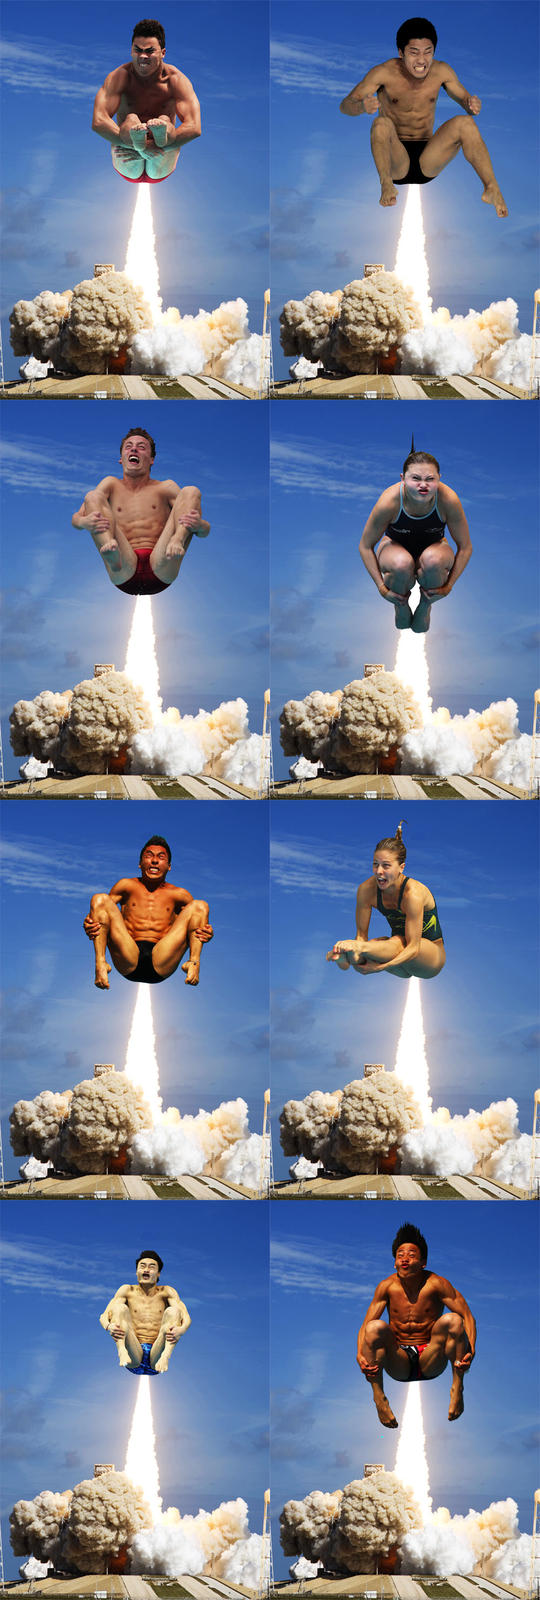 Olympic Divers MEME: Rocket Butt